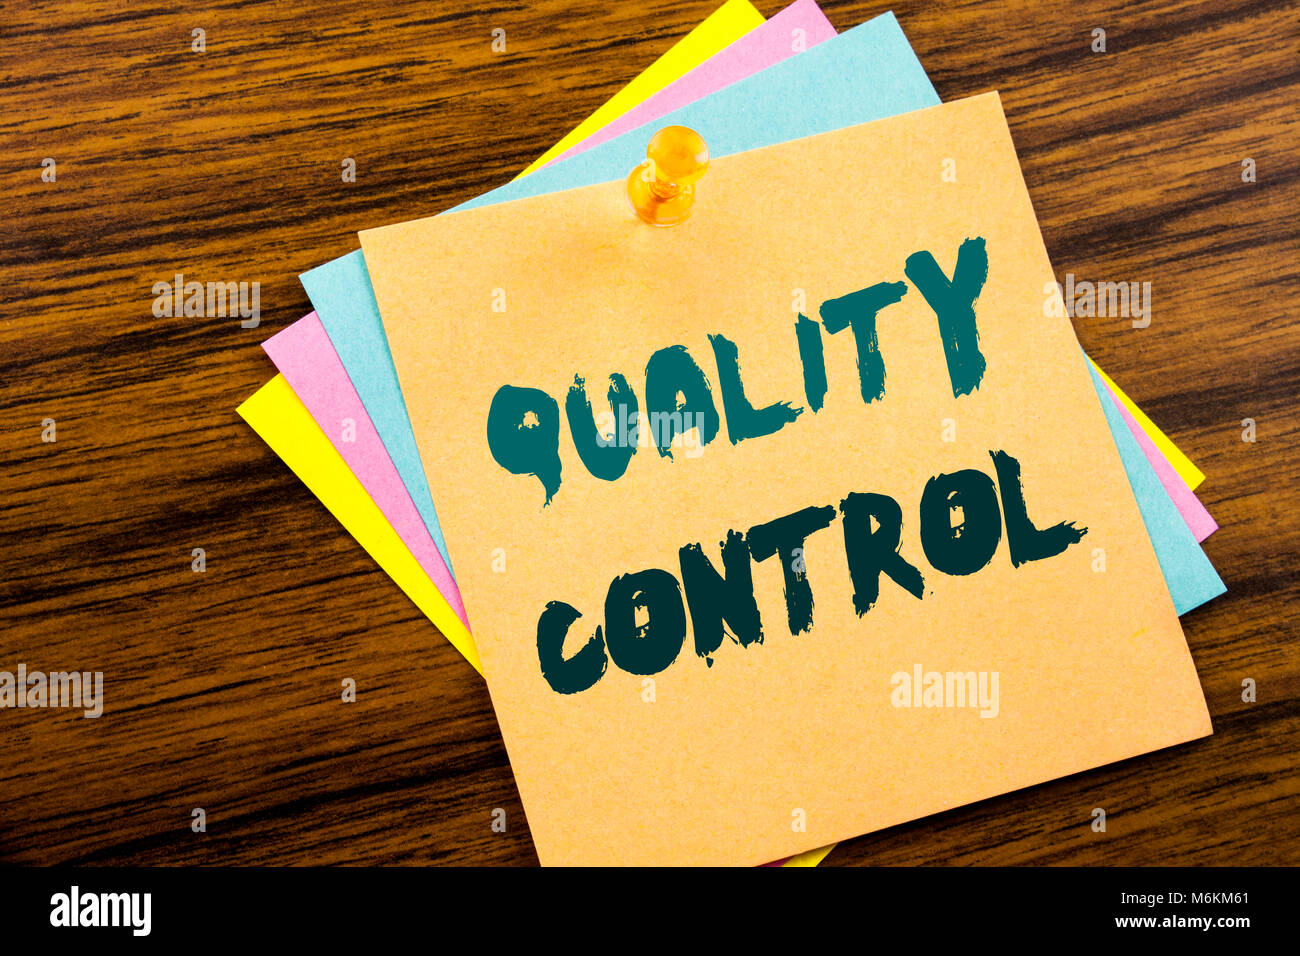 Hand writing text caption inspiration showing Quality Control. Business concept for Improvement Work written on - Stock Image